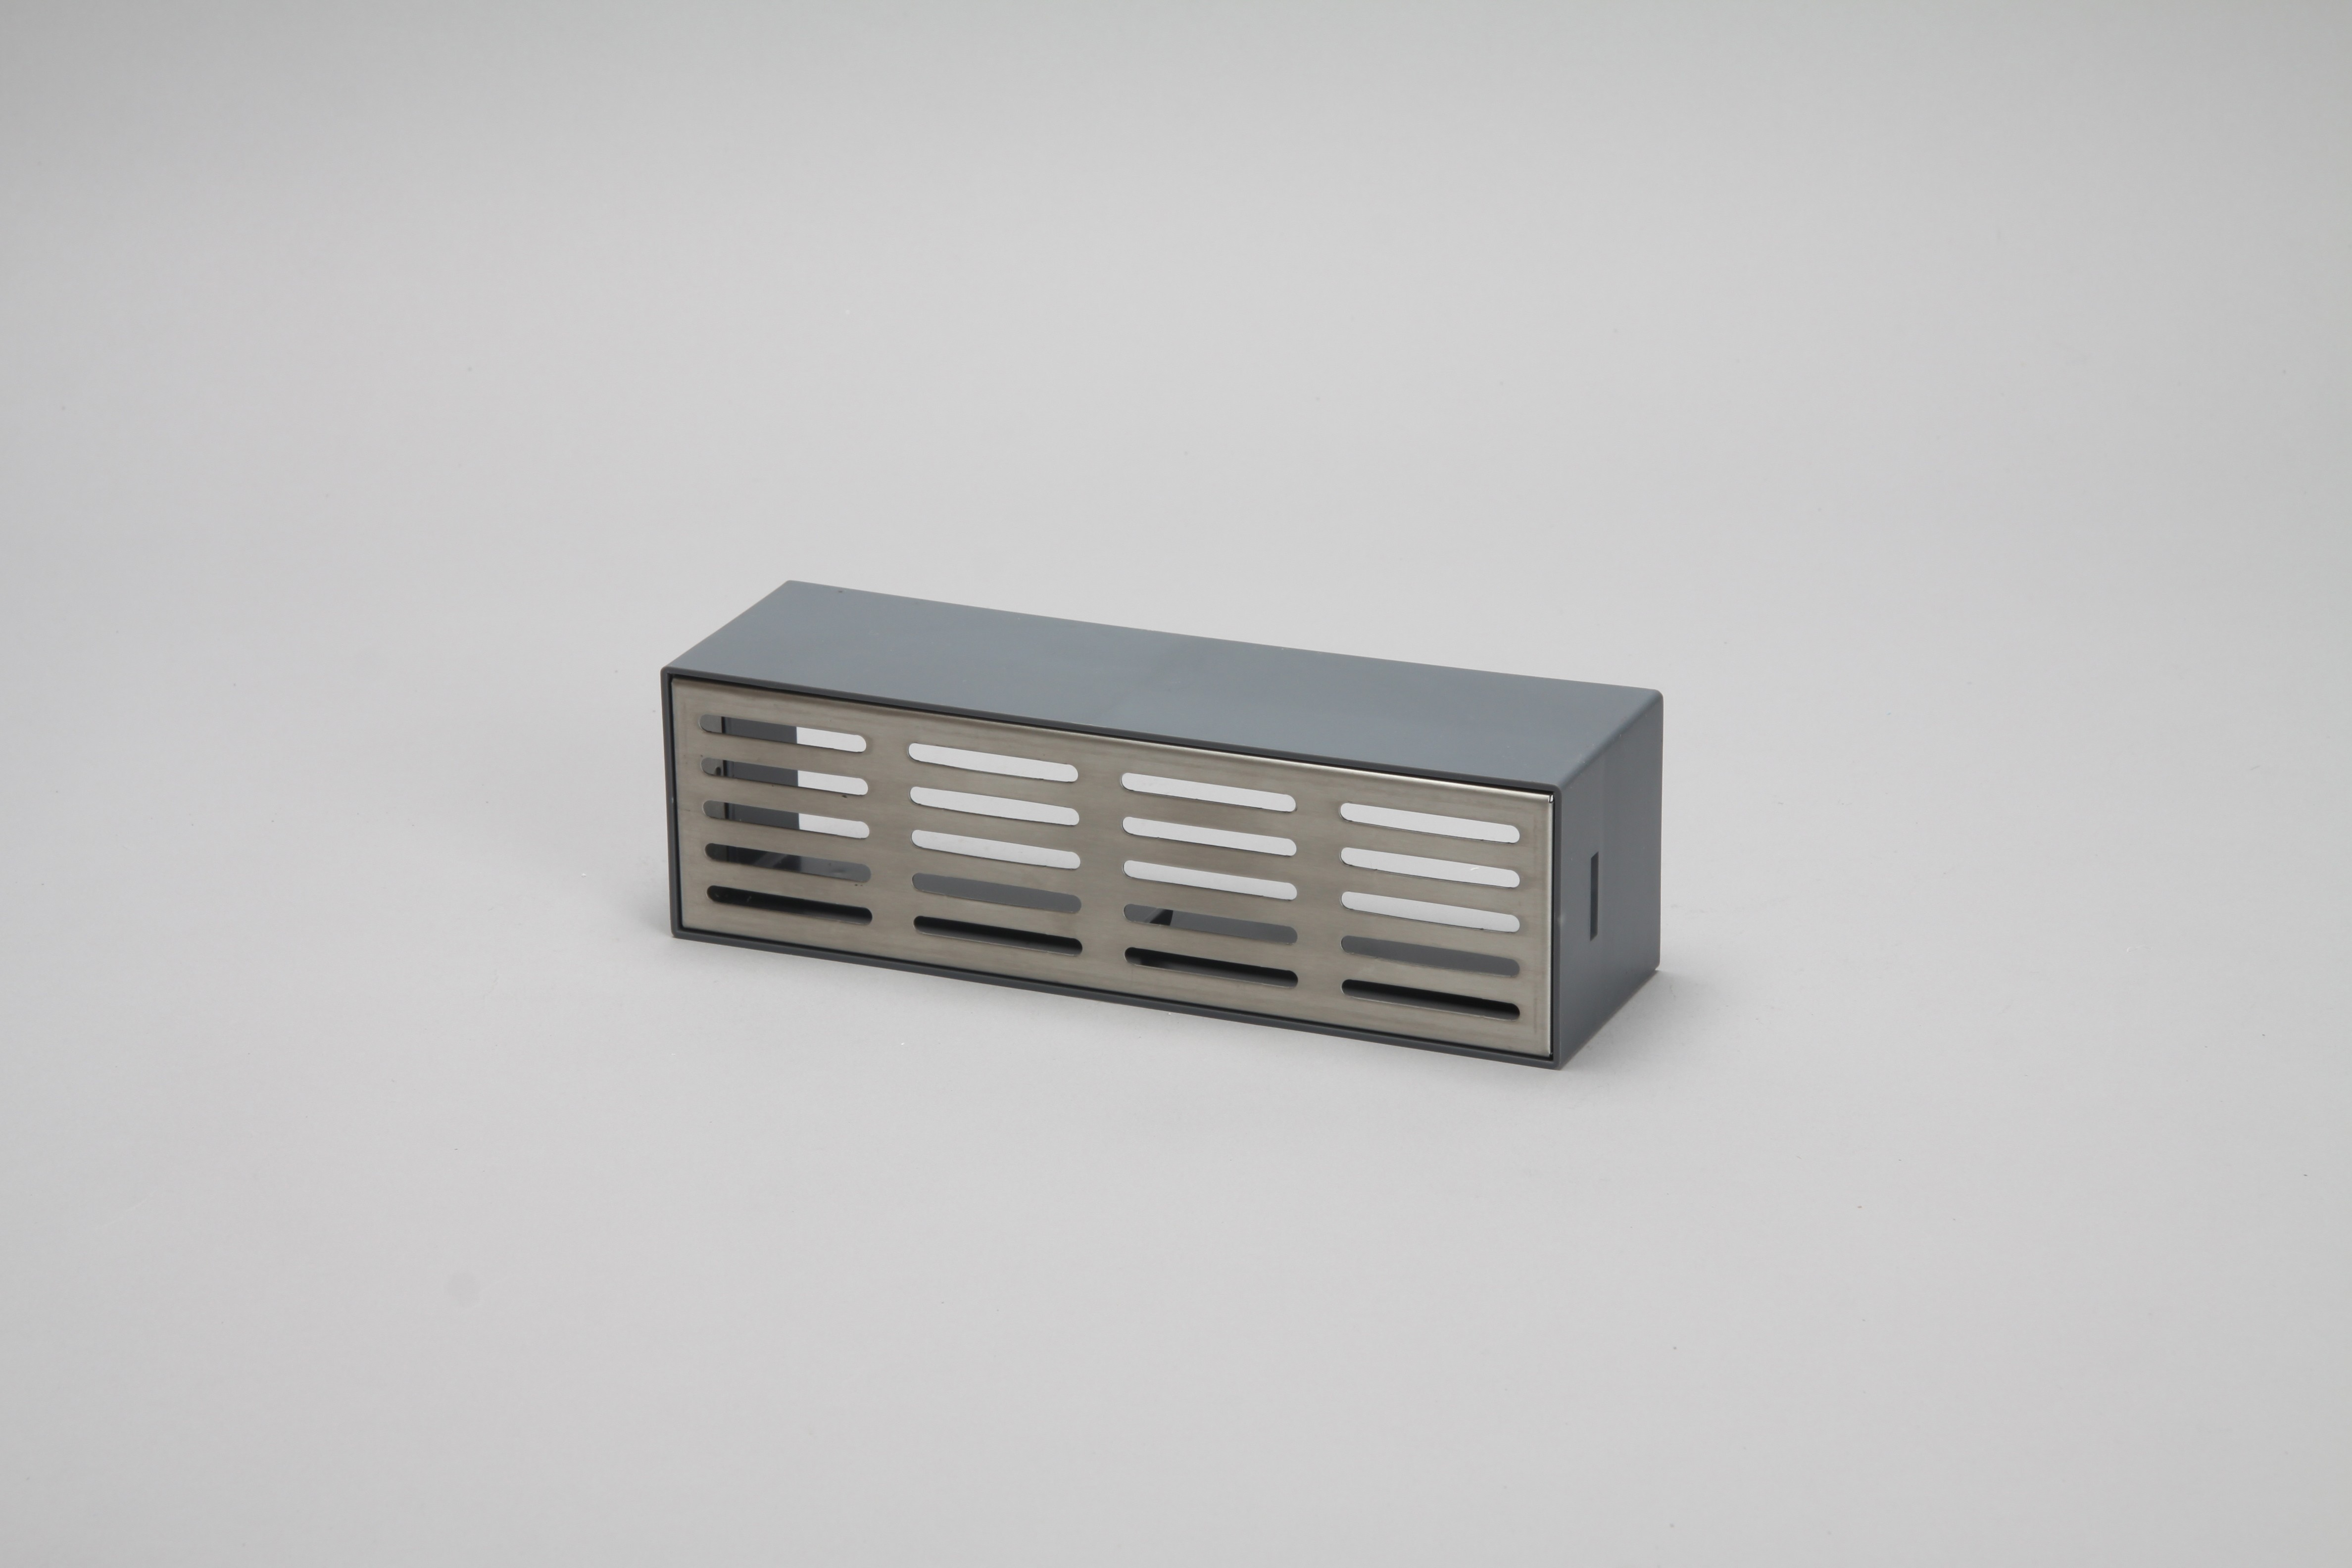 Brick vent with holder 204mm x 60mm brushed stainless steel